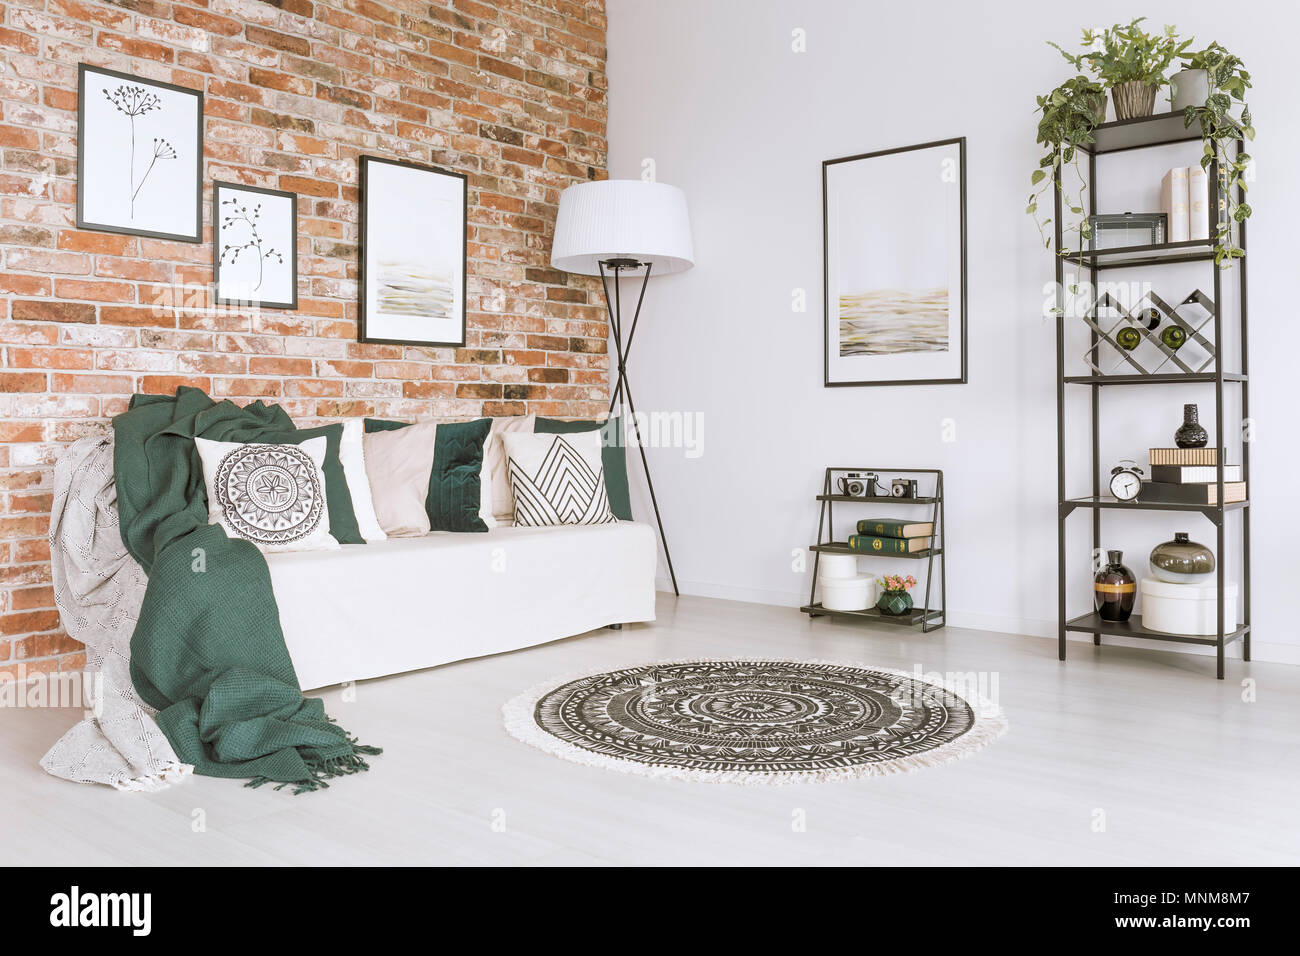 Green blanket on white sofa and pillows in living room with ...